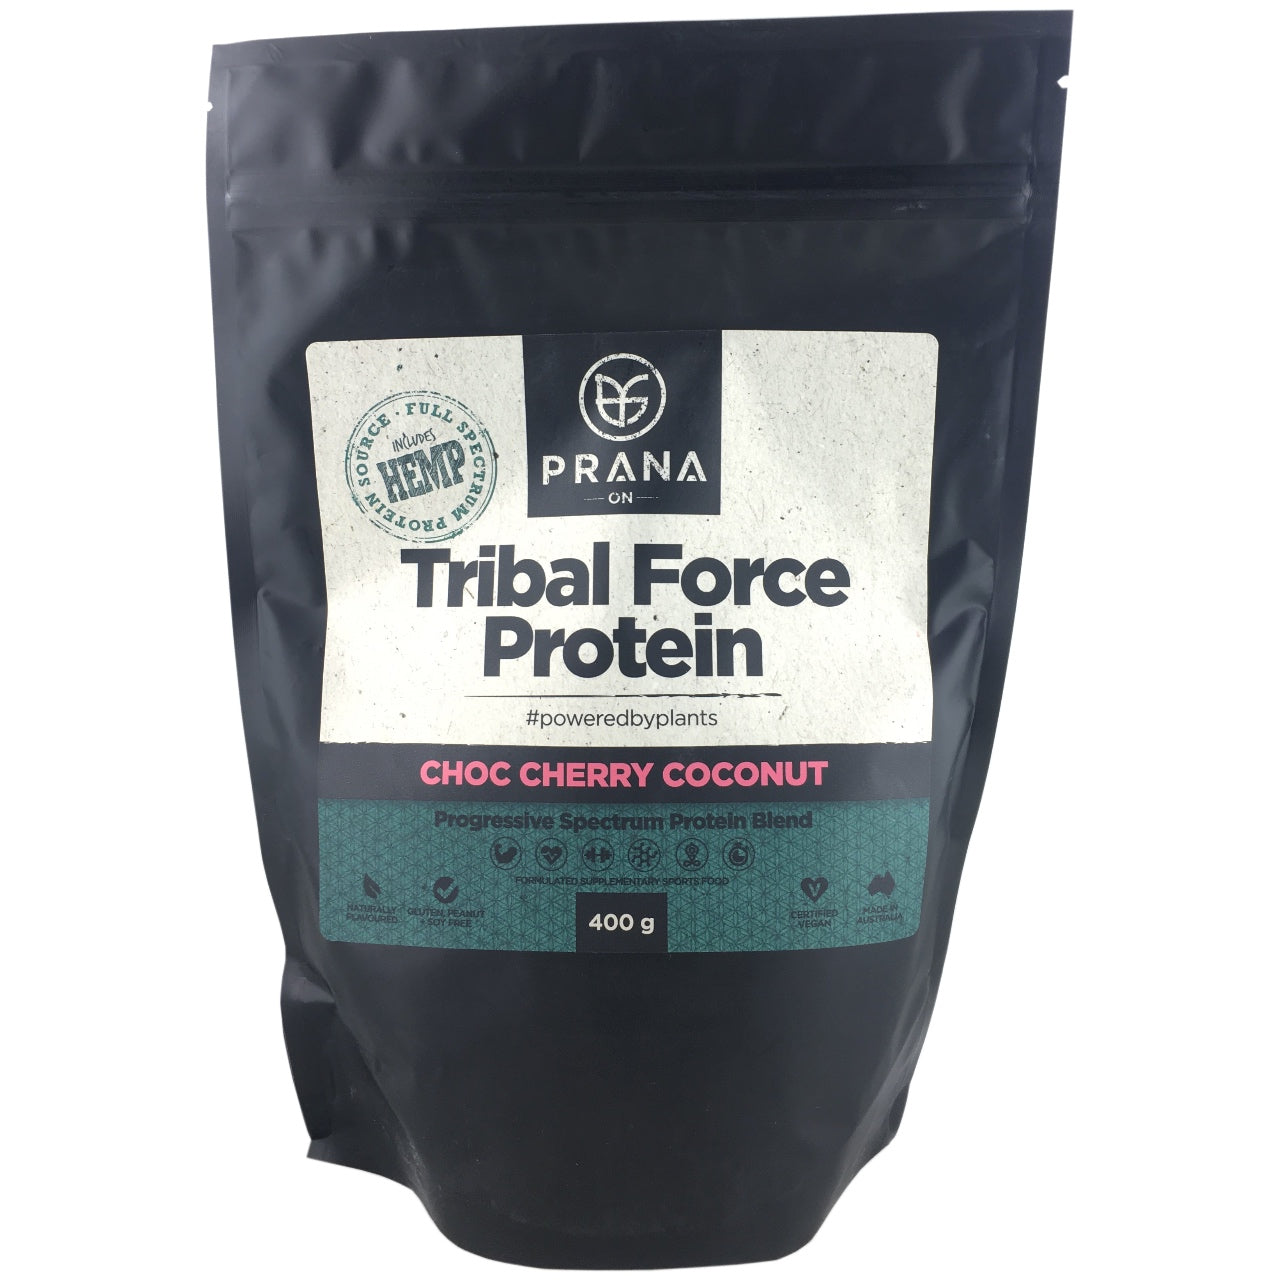 Prana Tribal Force Protein - Choc Cherry Coconut